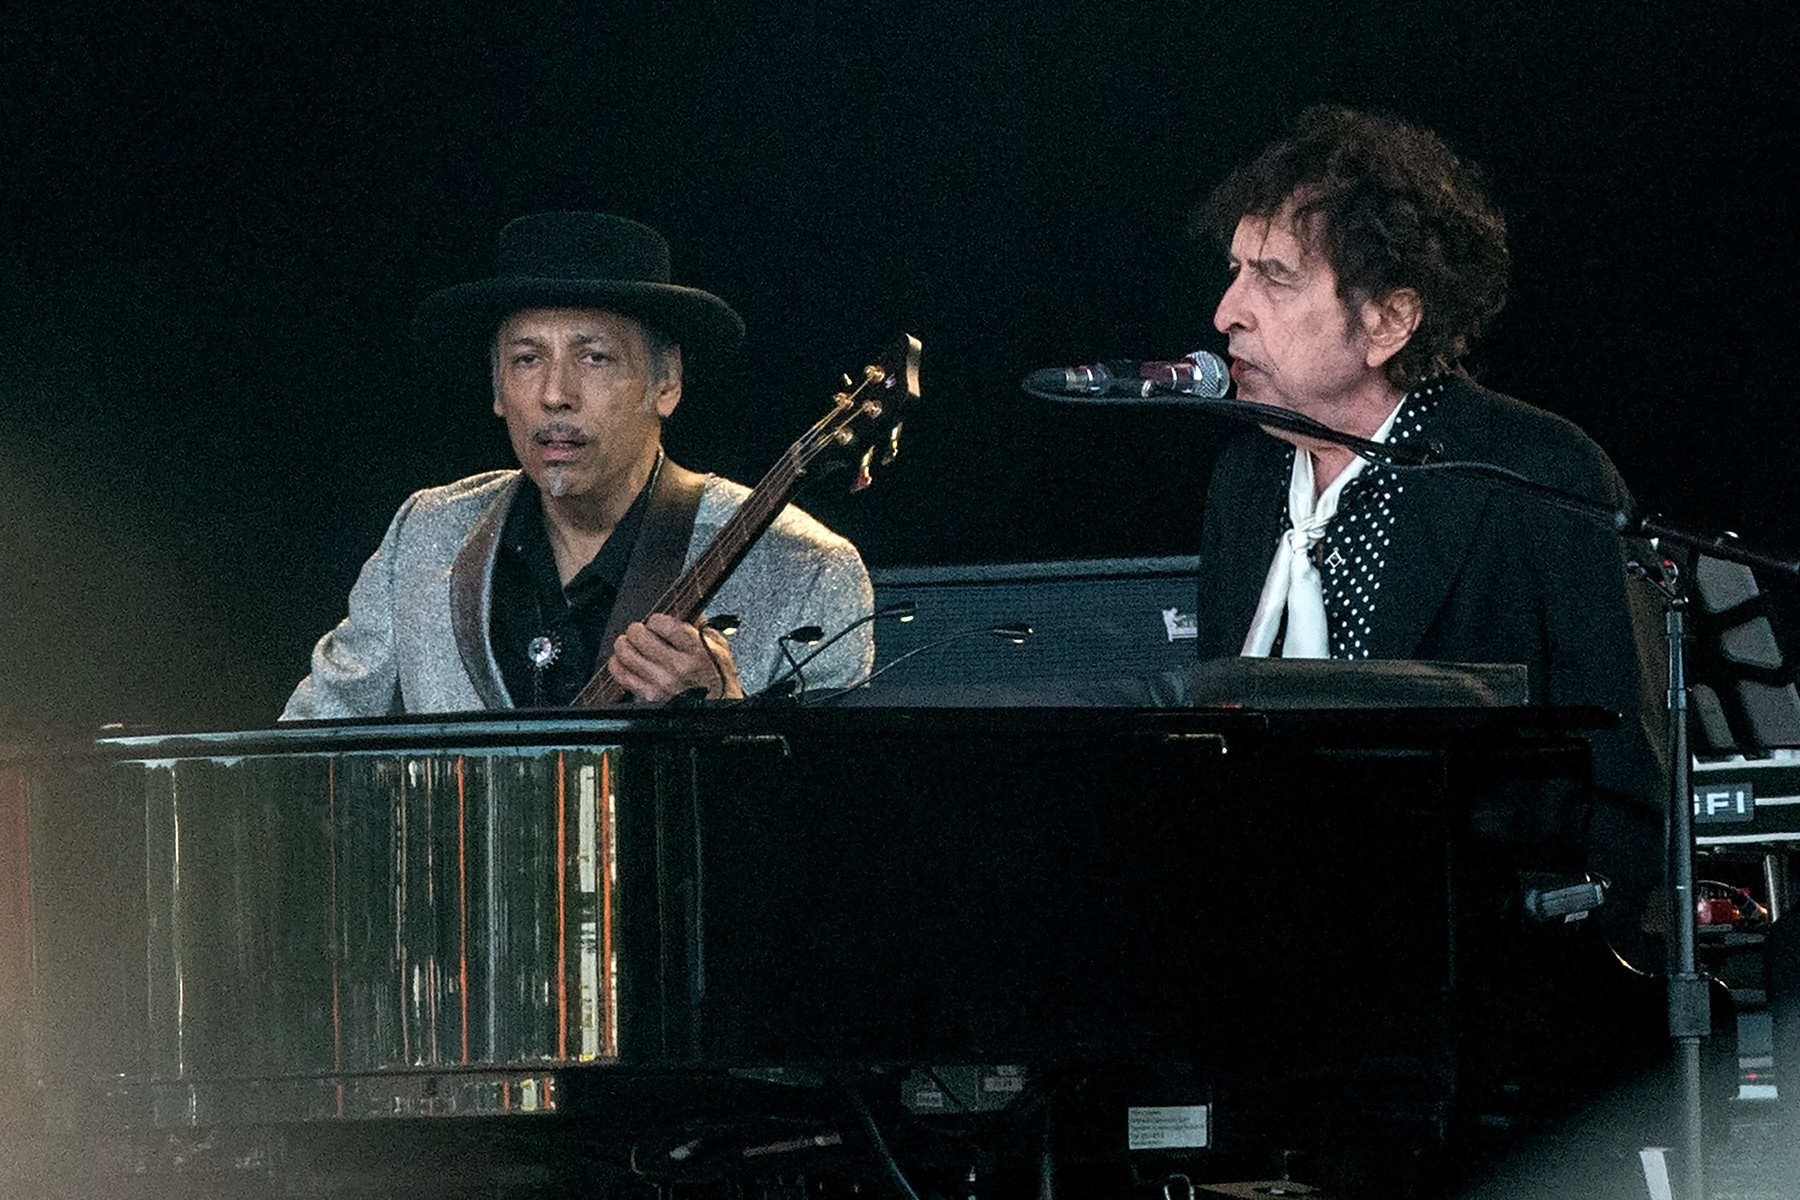 US musician Bob Dylan performs on the Orange stage as the music area opens at Roskilde Festival on July 3, 2019. (Photo by Helle Arensbak / Ritzau Scanpix / AFP) / Denmark OUT (Photo credit should read HELLE ARENSBAK/AFP via Getty Images)